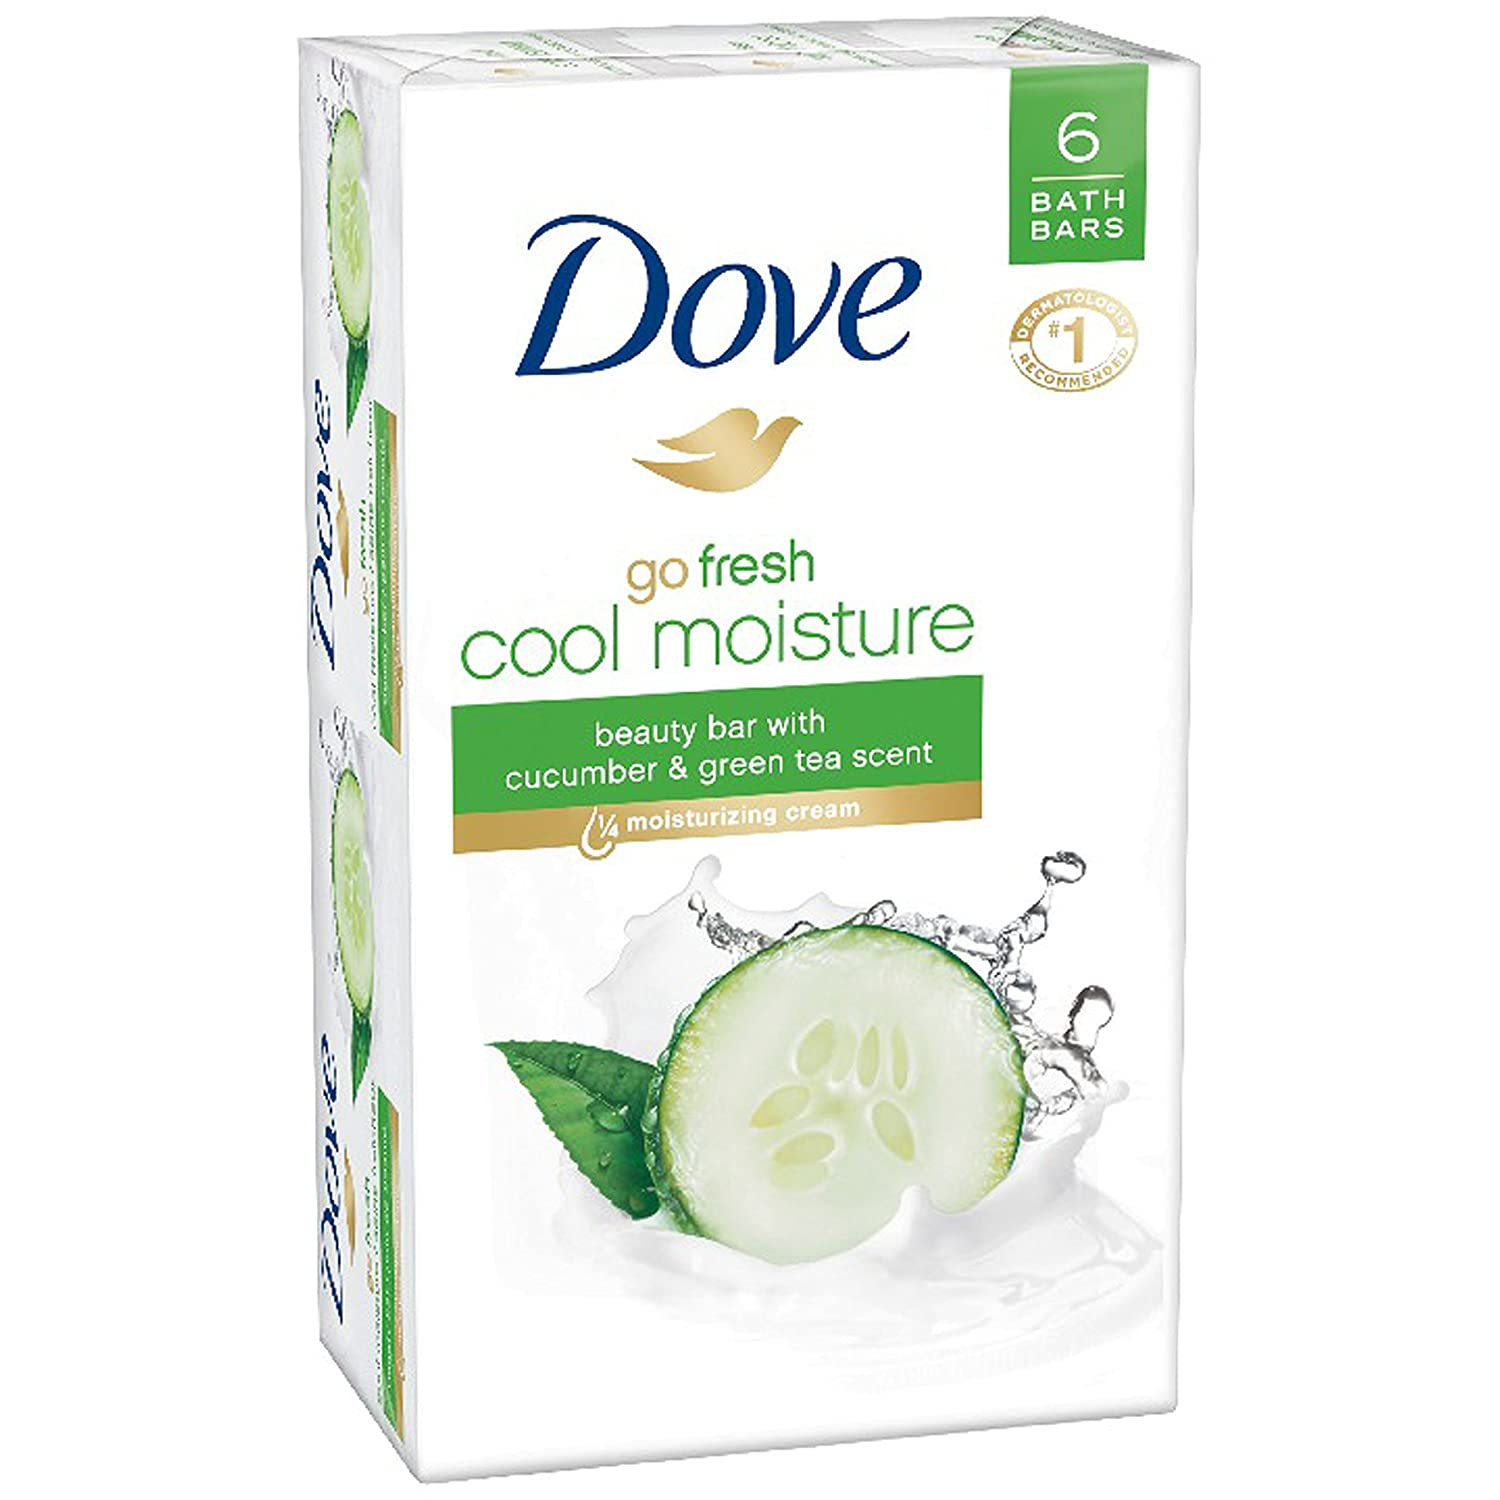 Dove go fresh Beauty Bar, Cucumber and Green Tea 4 Ounce, 6 Bar